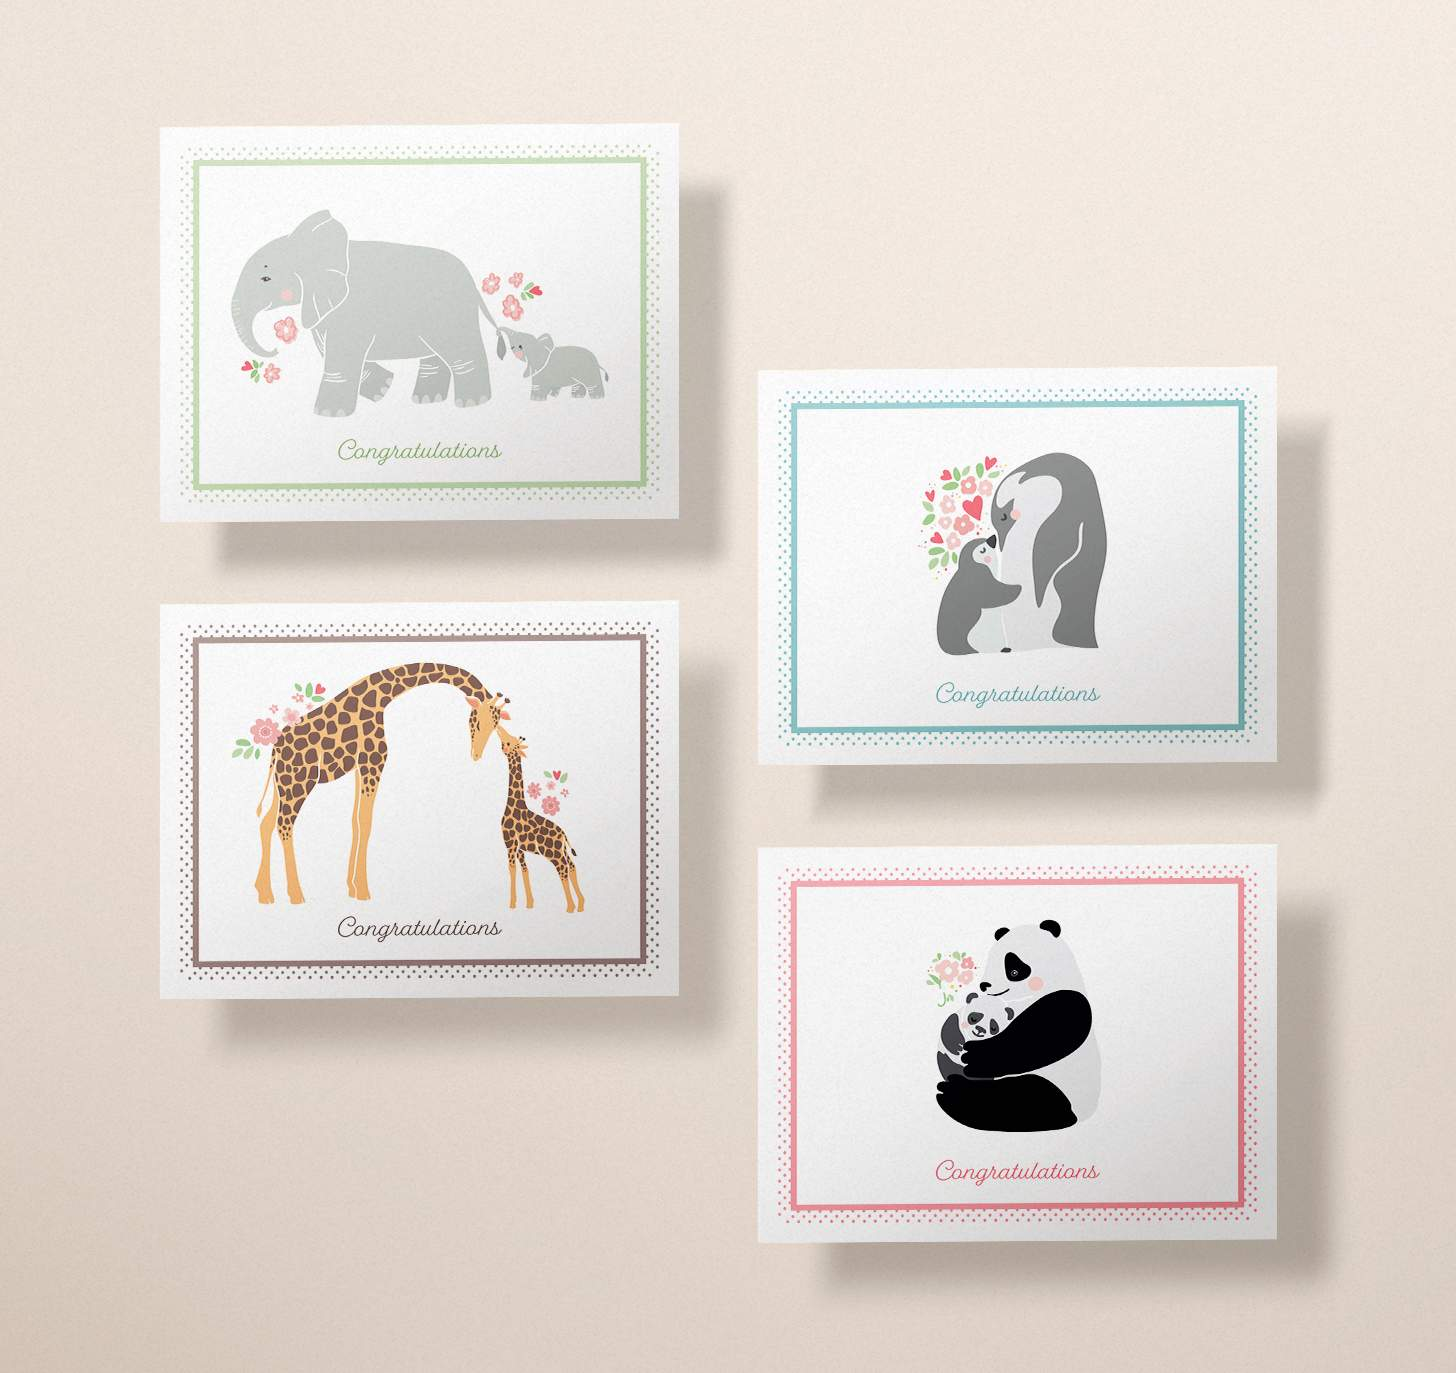 Four cards with mother and baby elephant, giraffe, panda, and penguin designs